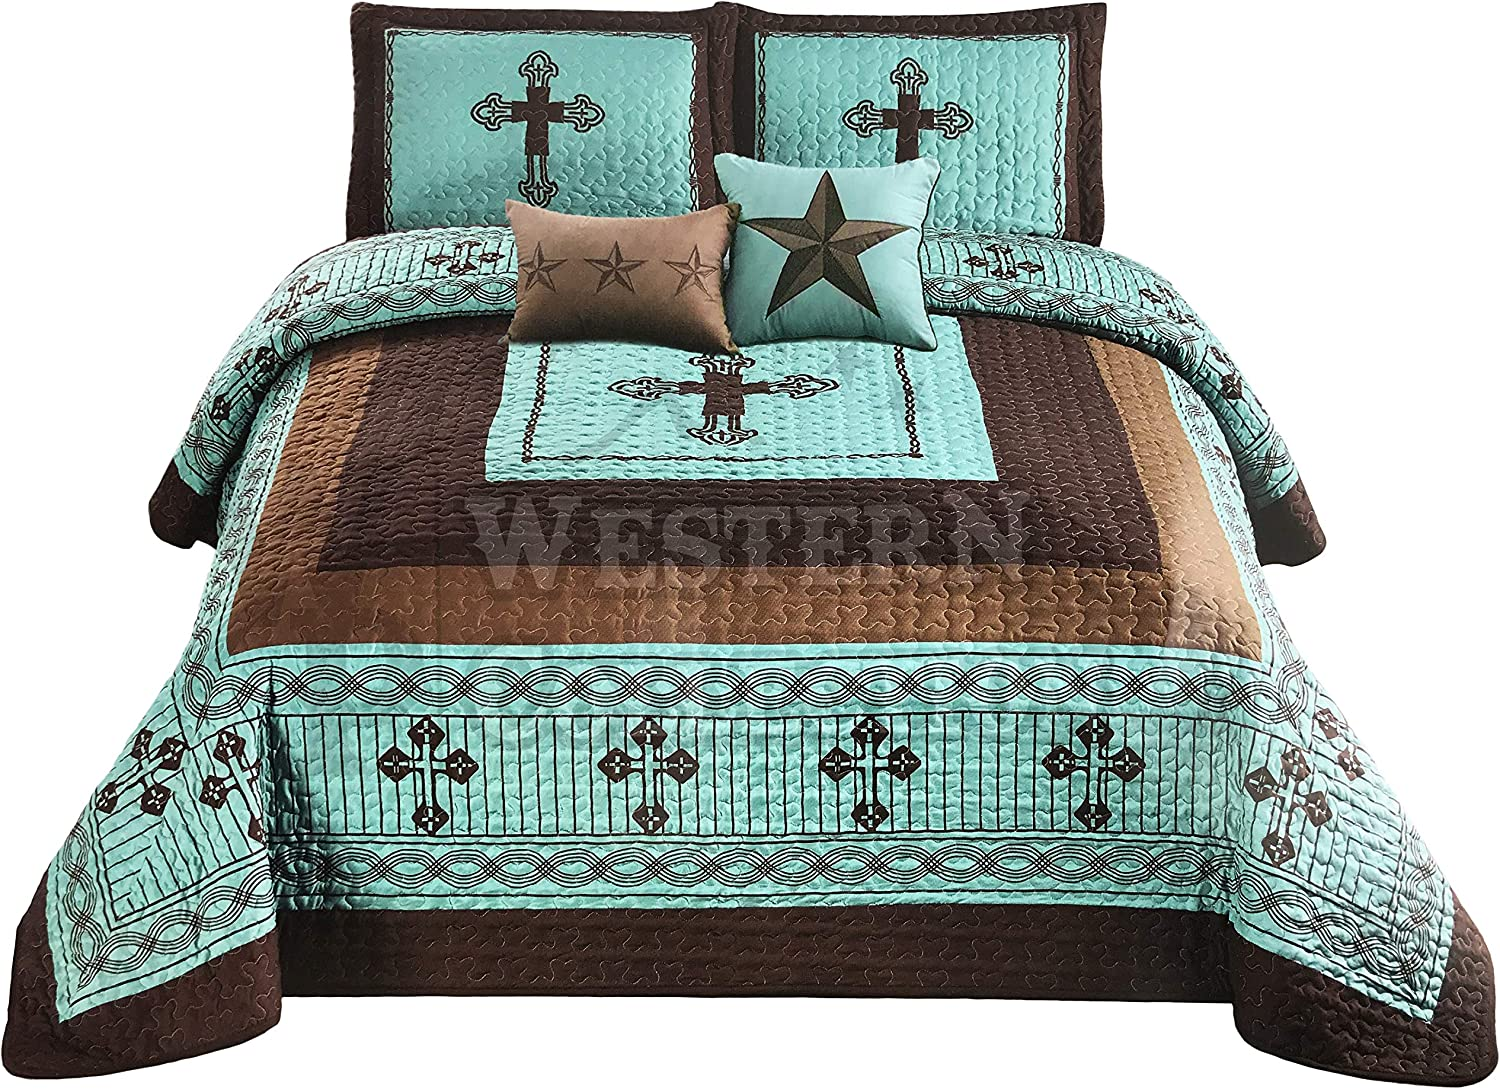 Western Collection New 5 Pieces Western Stars and Horses Cowboy Luxury Home Quilt Bedspread Oversize Comforter with Cushions (King, Turquoise Cross)